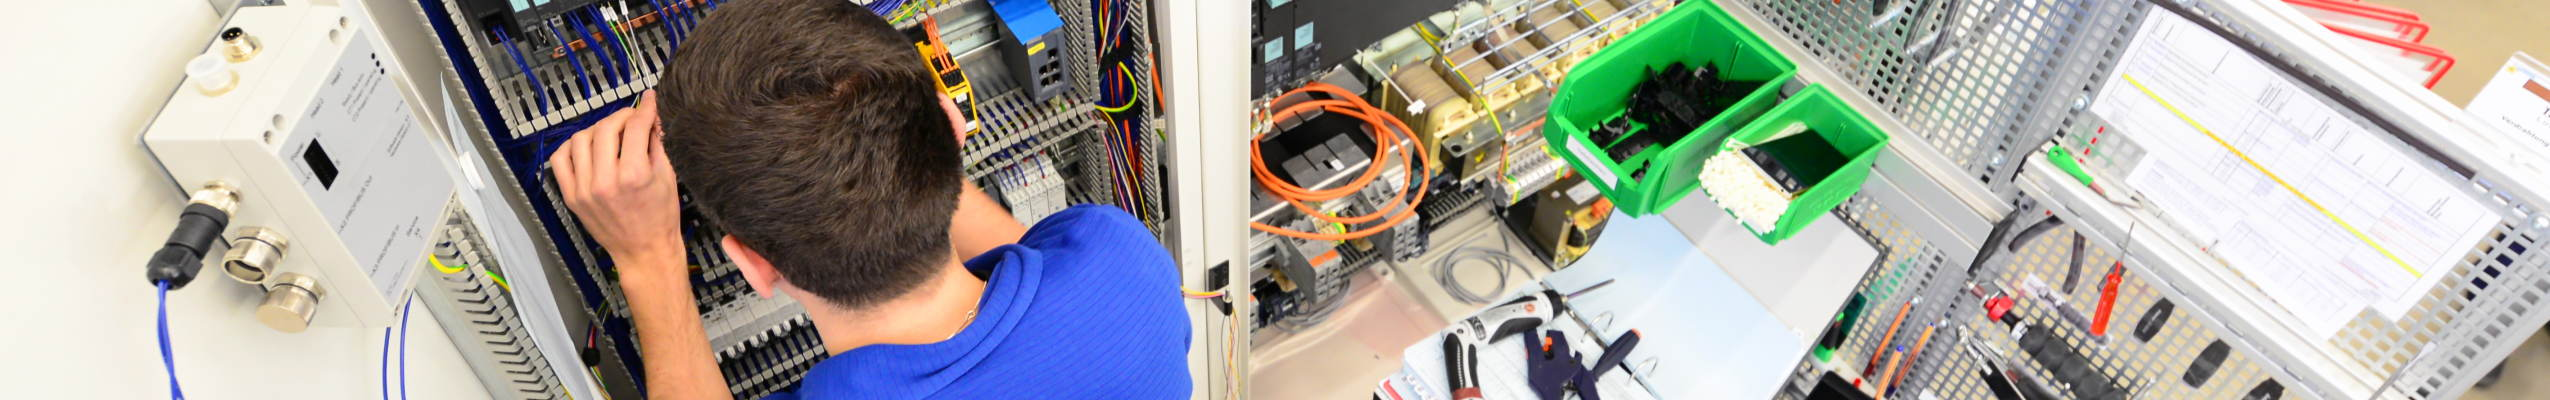 Network Support Working in Data Center